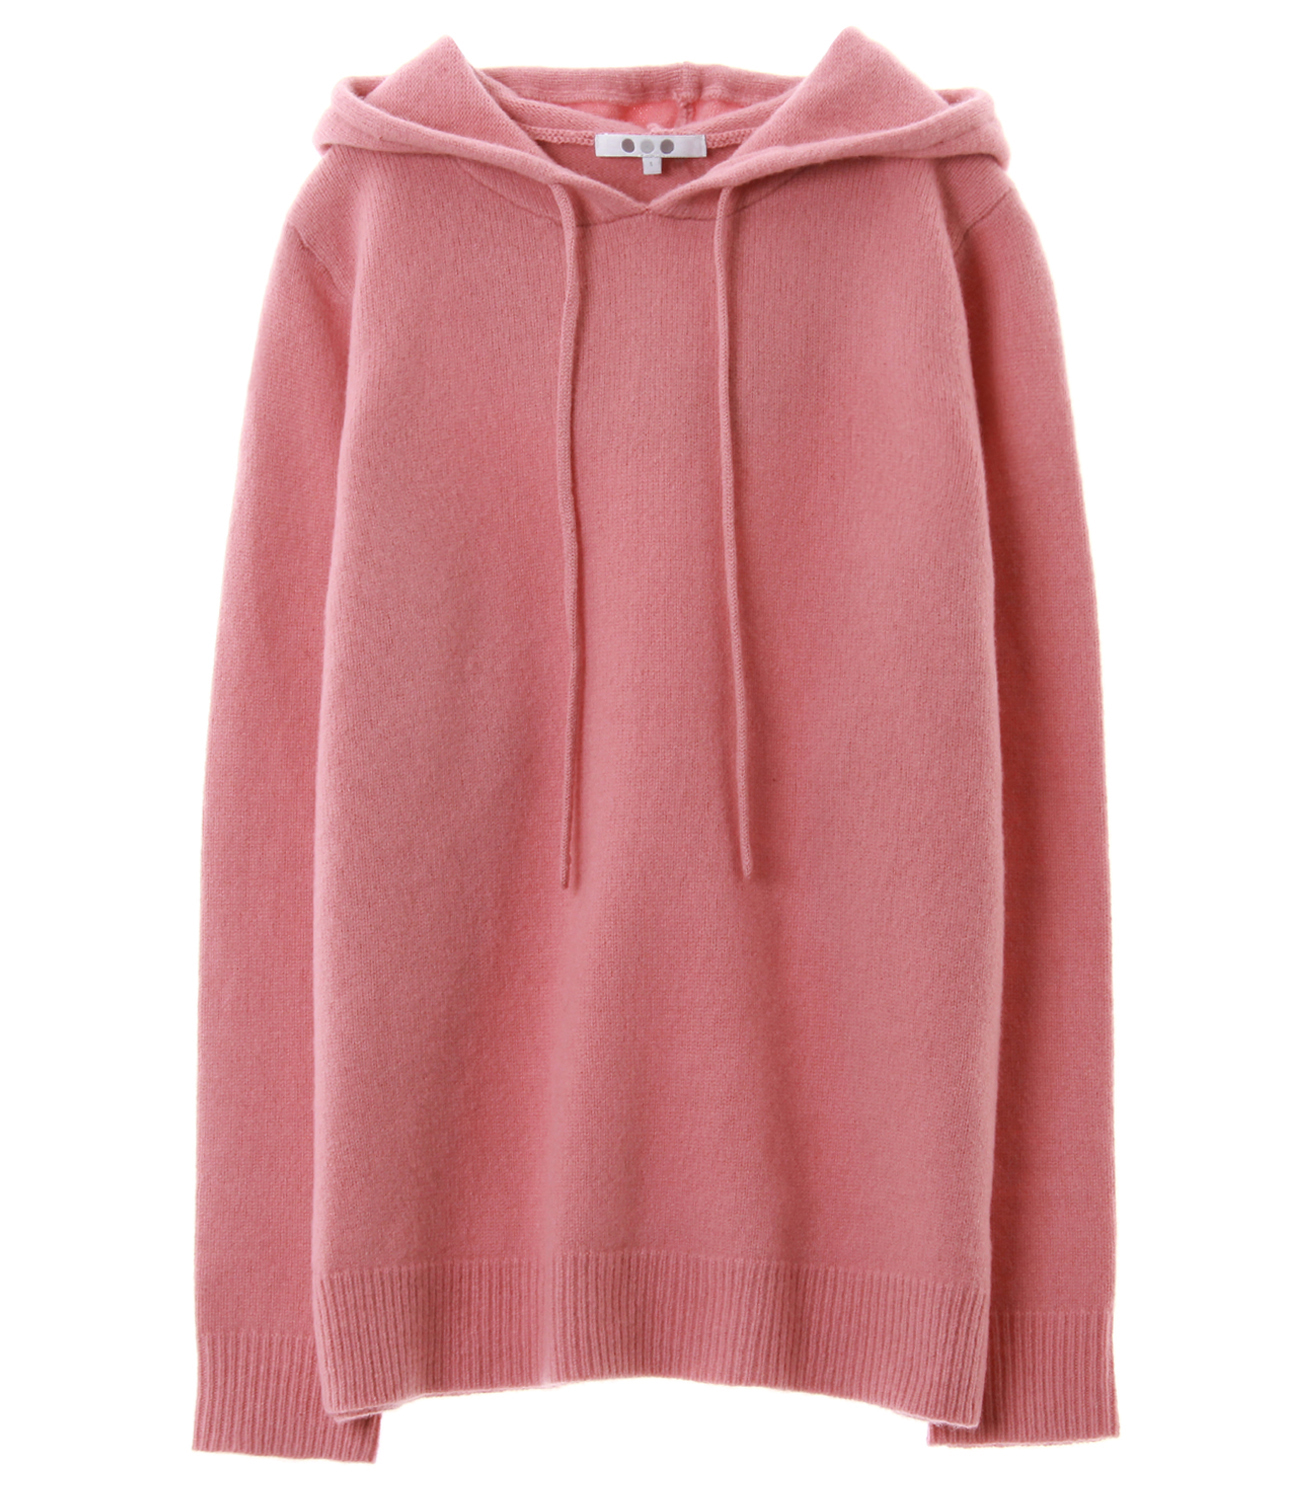 lt smooth wool hooded pullover 詳細画像 dusty rose 1